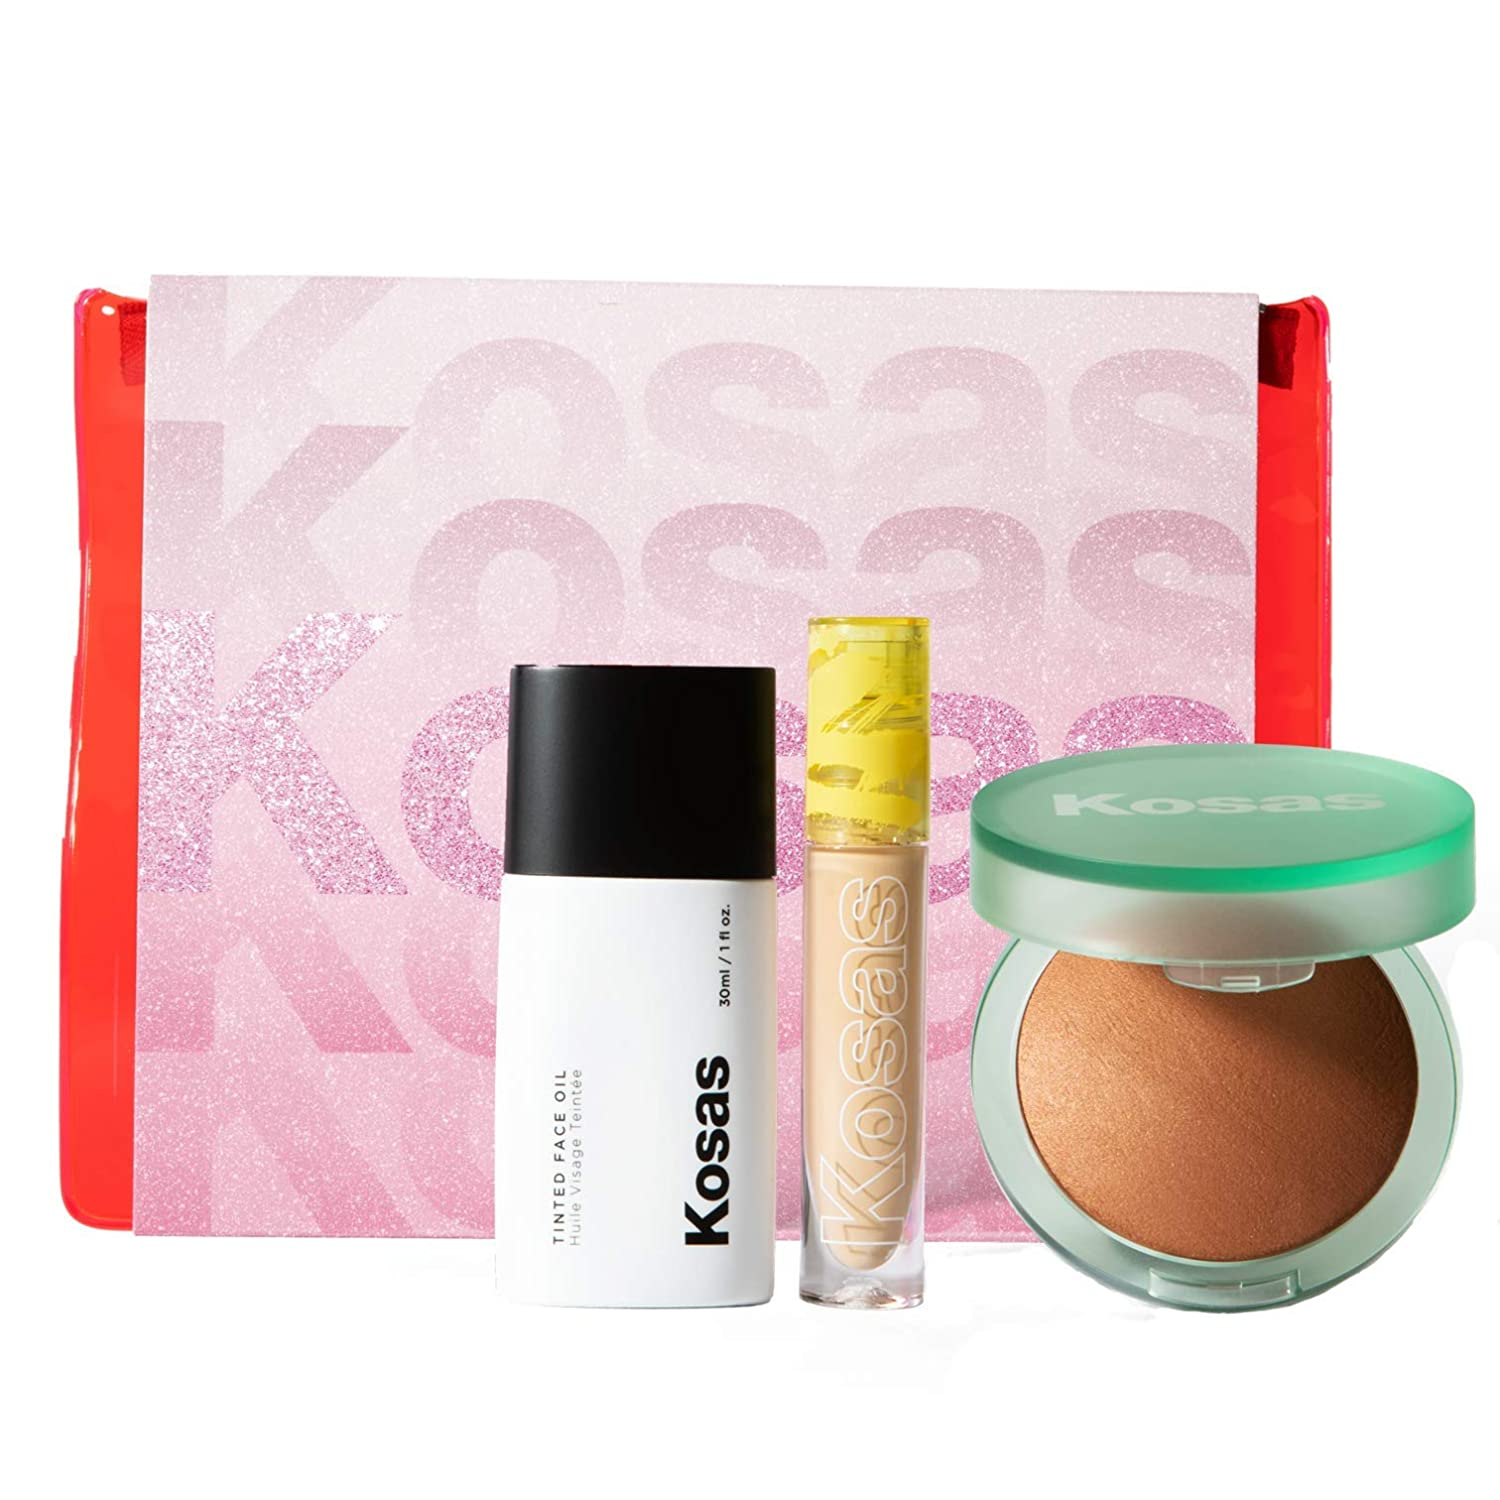 Kosas The Glow All Out Set discount Tint Max 66% OFF Ton + Bronzer Concealer Skin